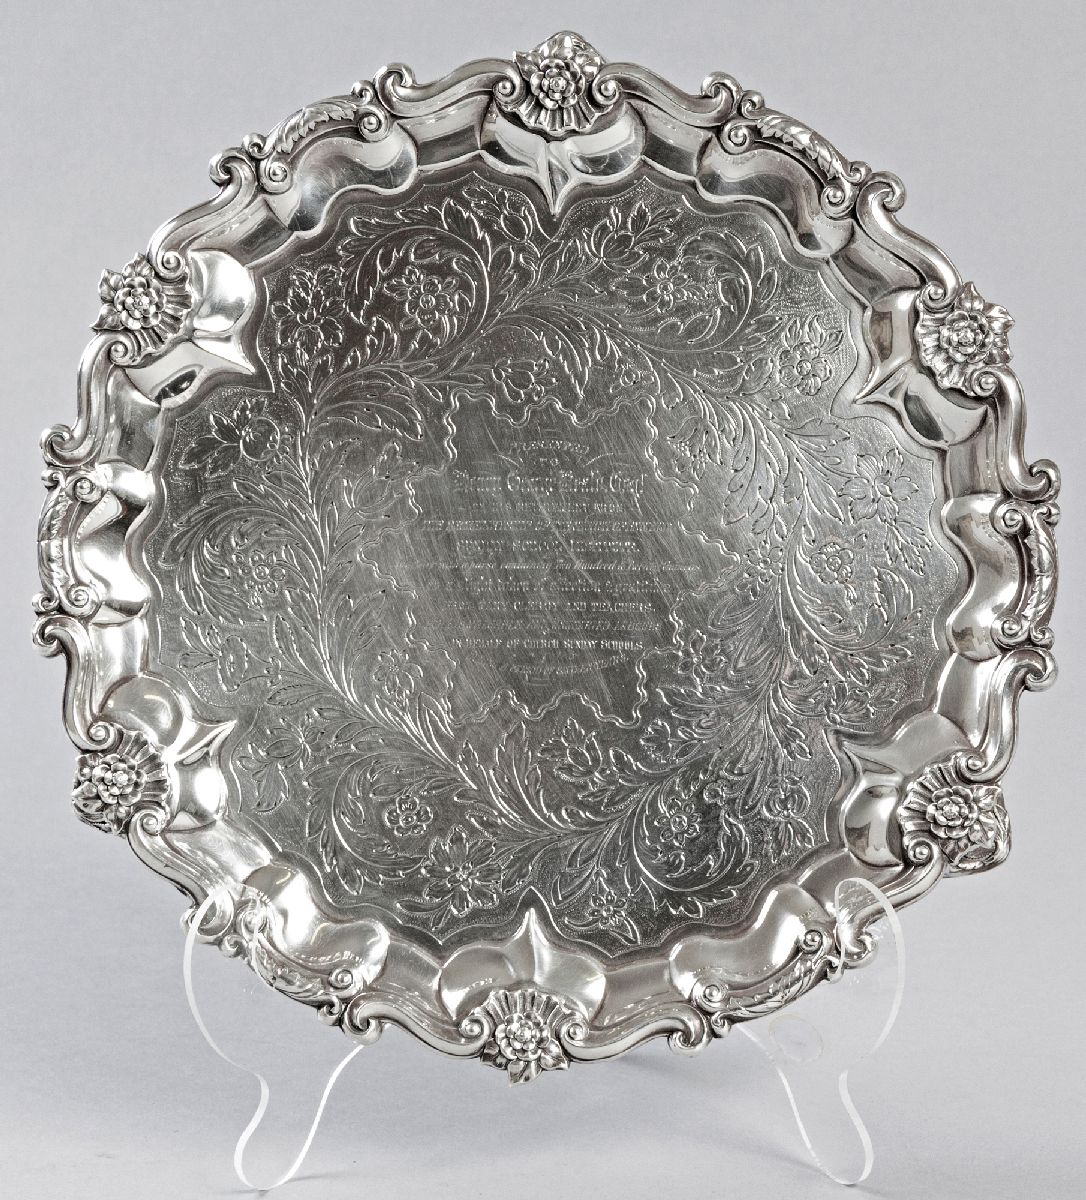 Lot 25 - A GEORGE VI SILVER SALVER, LONDON 1932, J.J.C., with applied serpentine border, decorated with